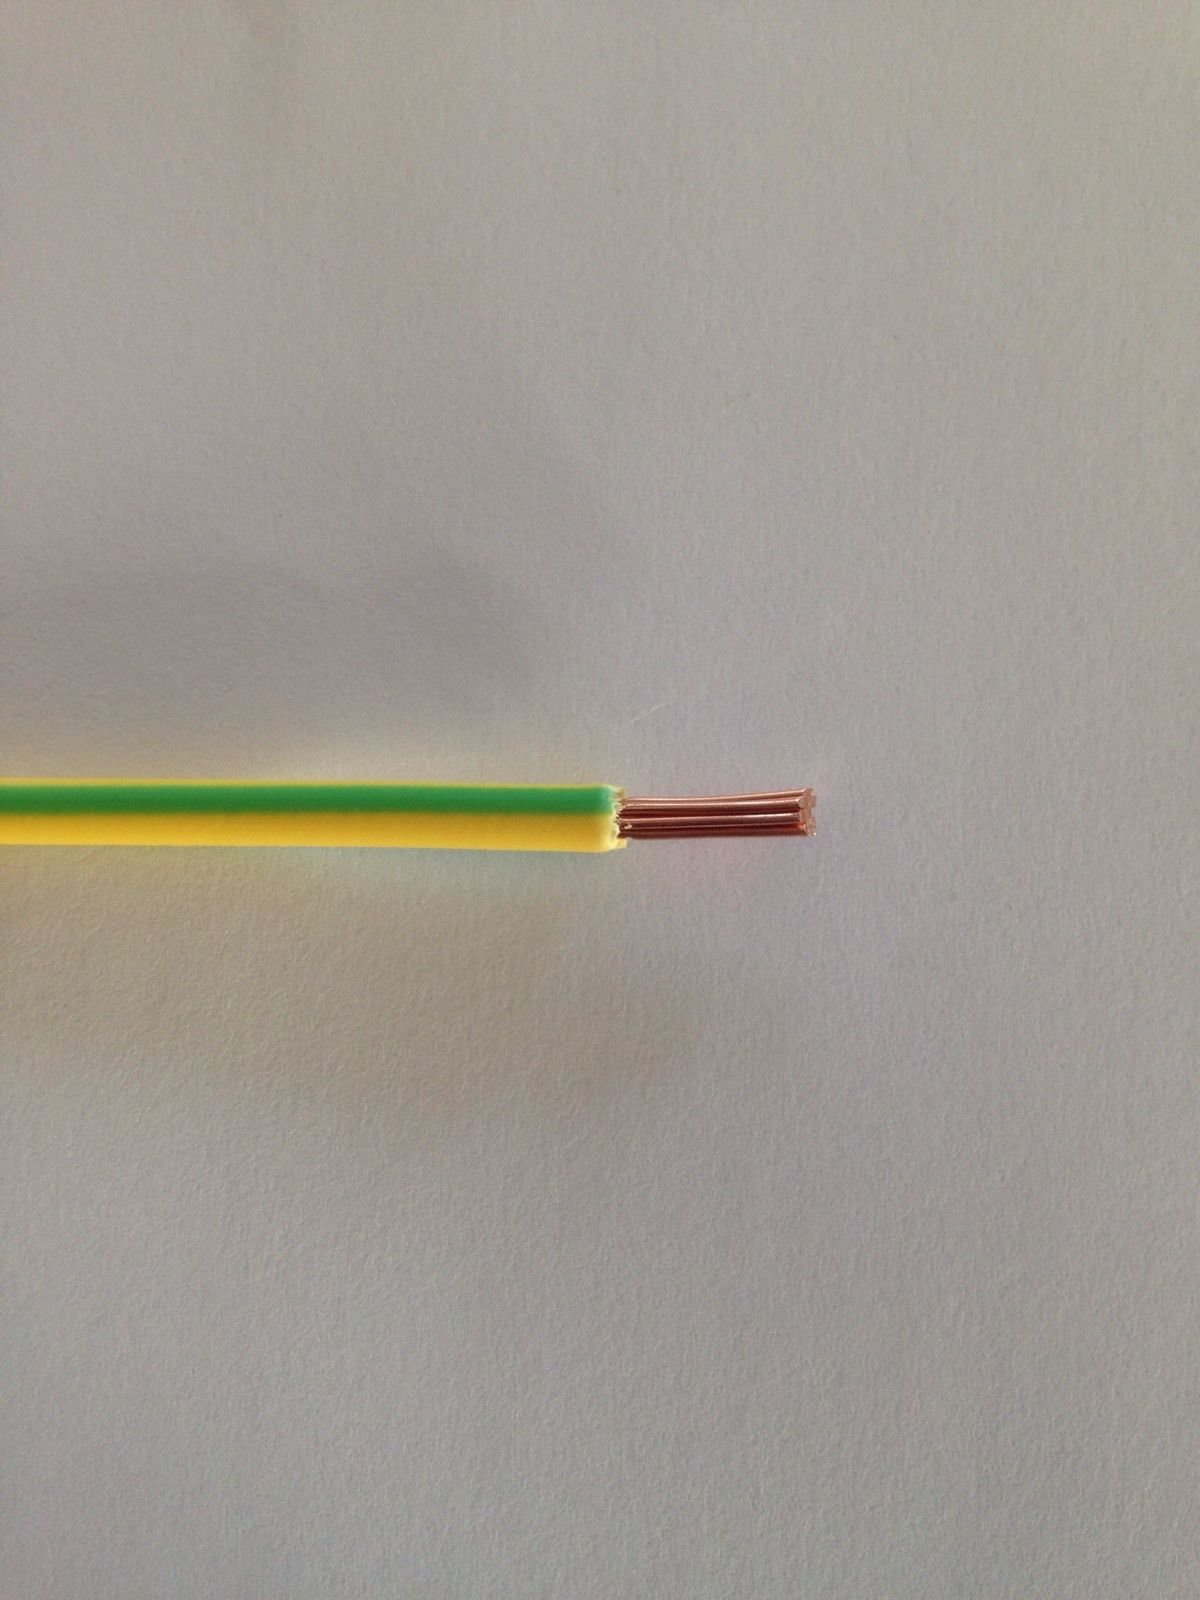 6mm Green & Yellow Earth Cable Earth Bonding Cable - Price Per Metre